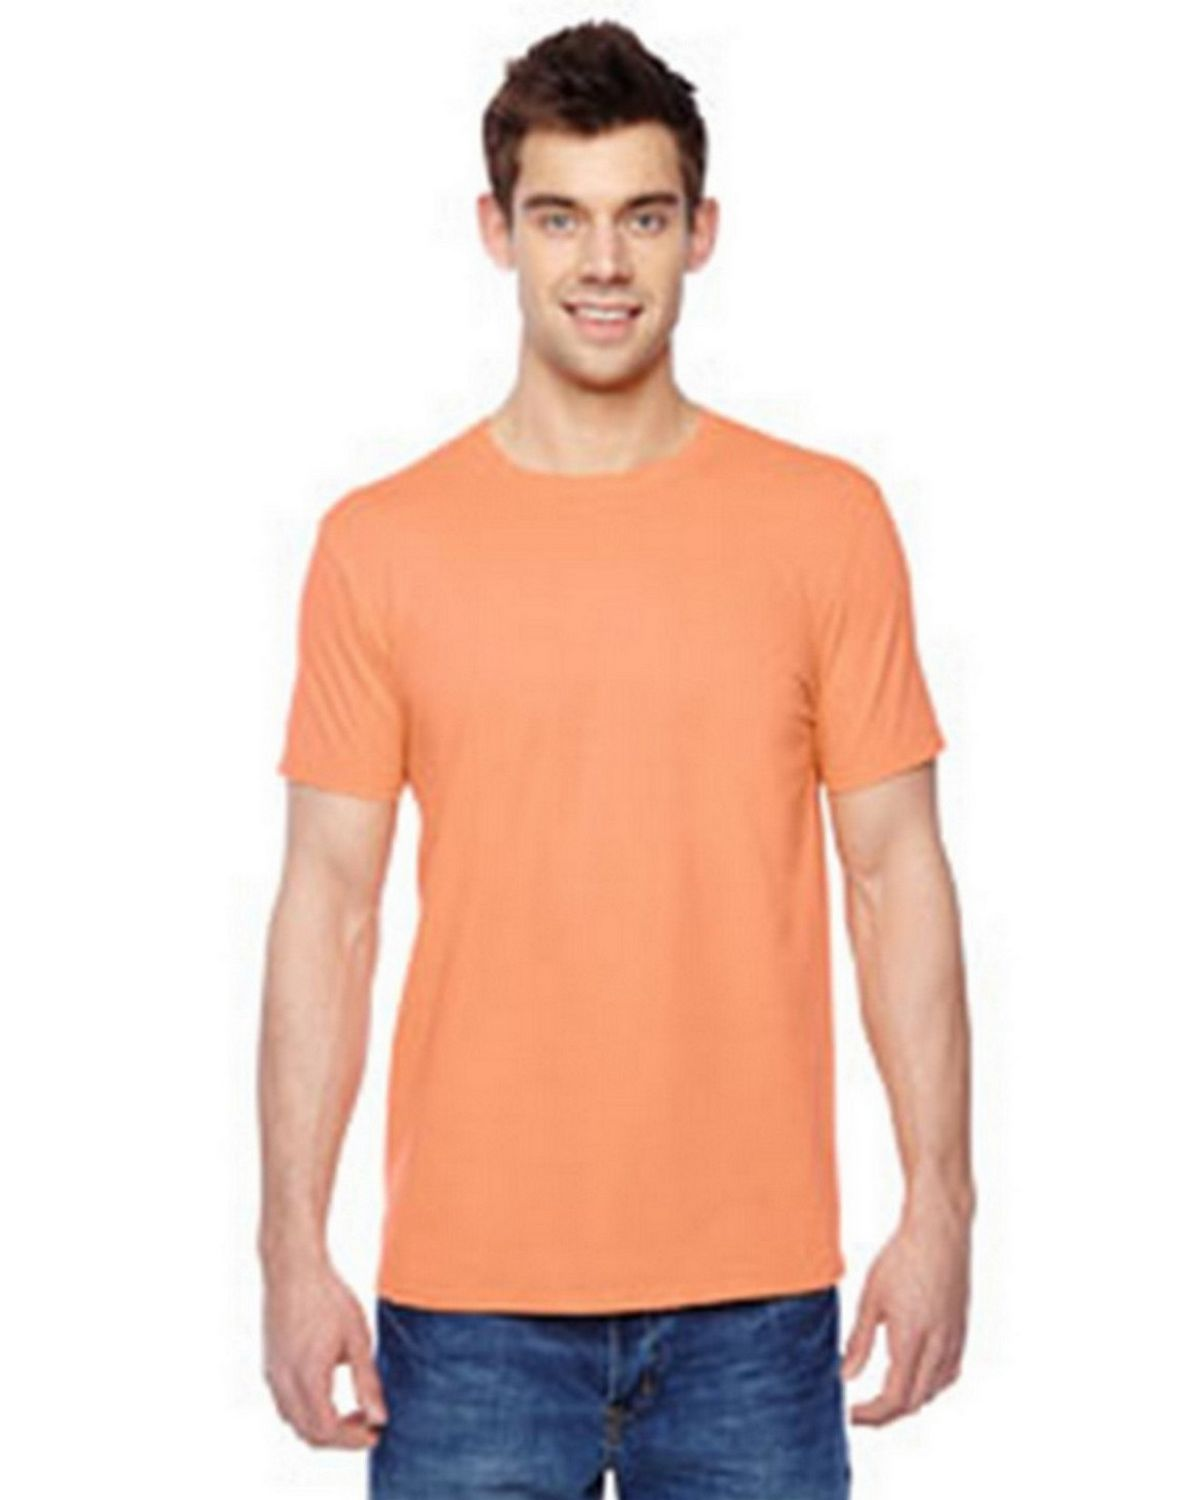 Buy Fruit Of The Loom Sf45r 100 Sofspun Cotton Jersey Crew T Shirt